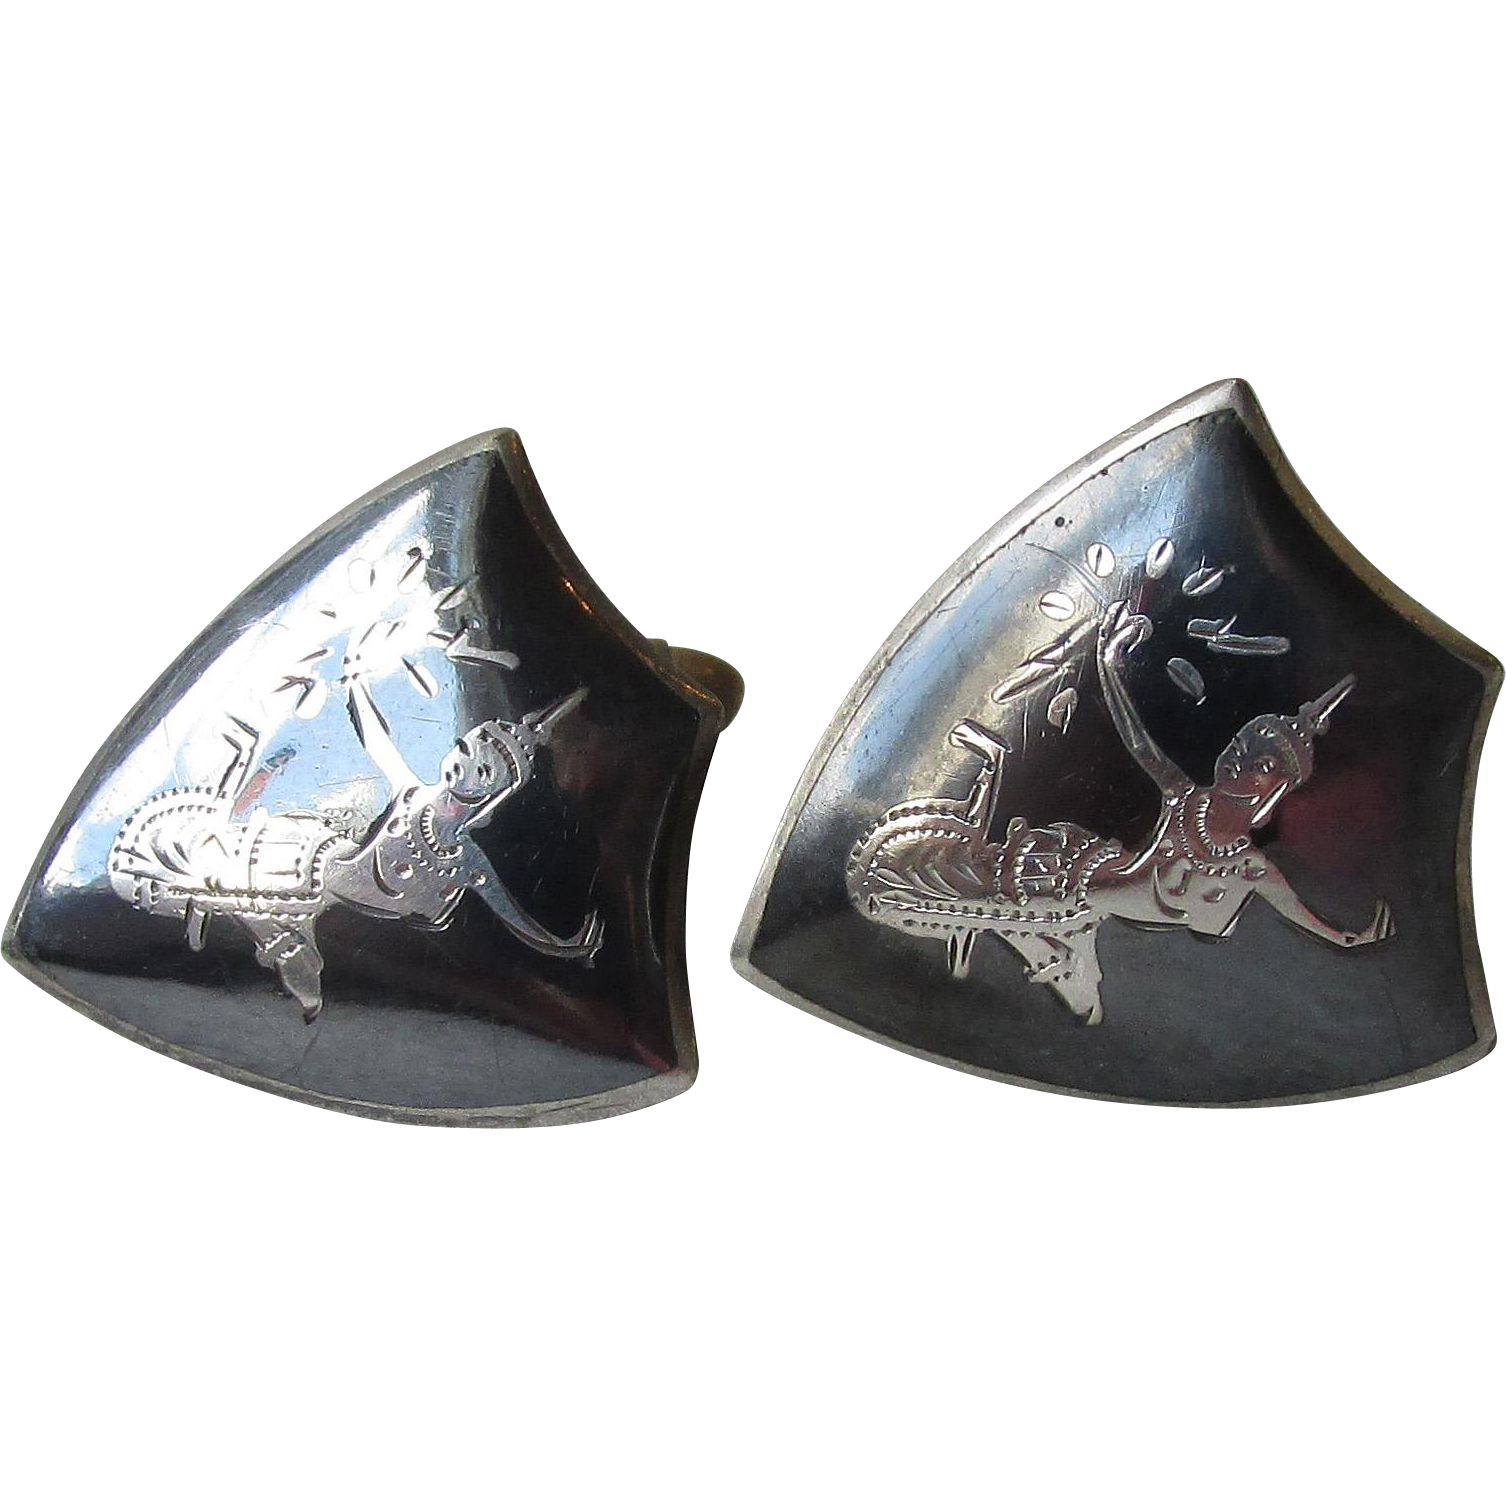 Vintage Siam Sterling Silver Black Enamel Niello Dancer Goddess Shield Shaped Cufflinks